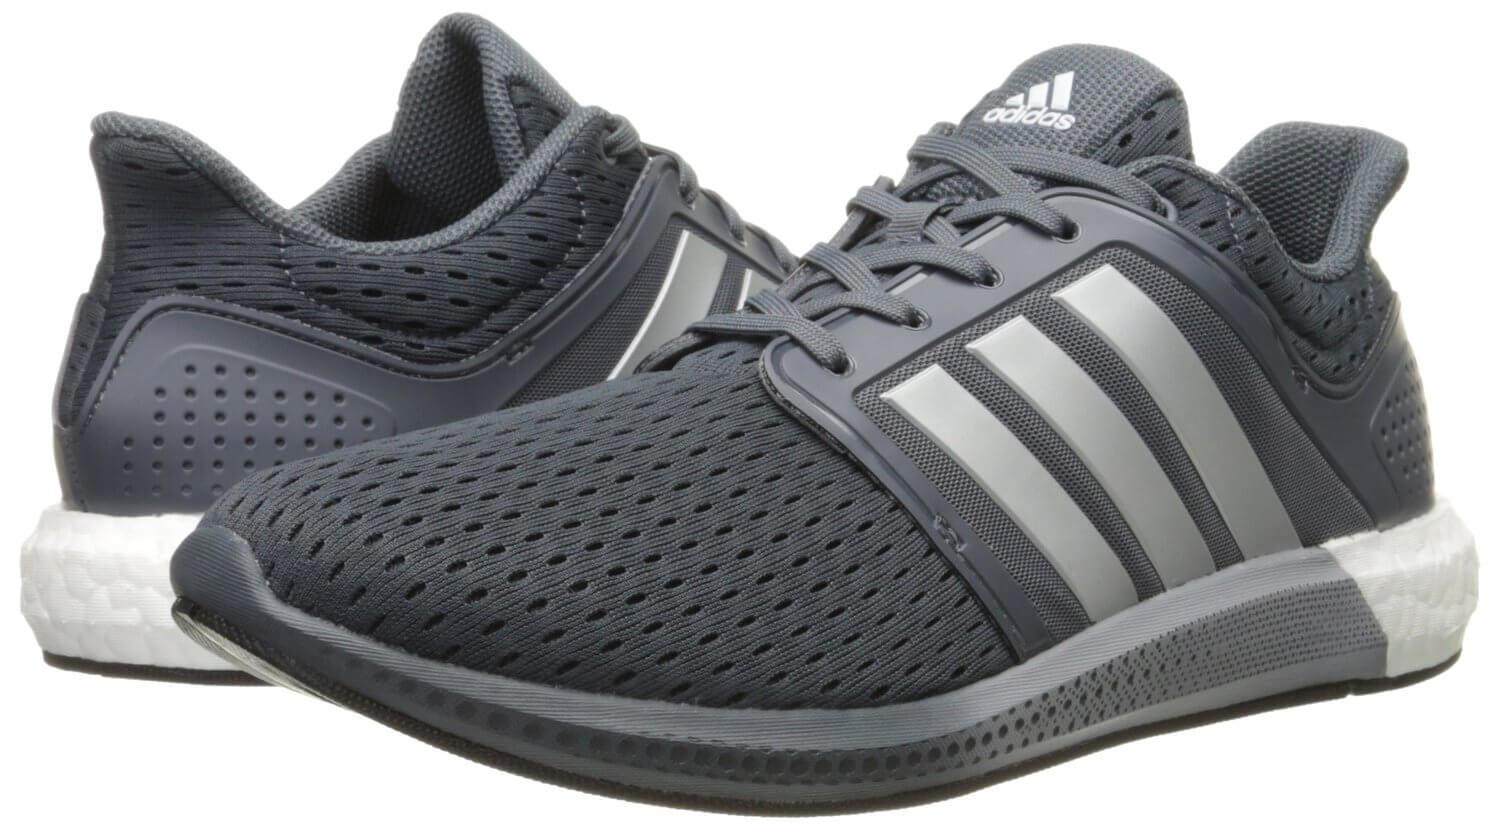 103655c0e Adidas Solar Boost Reviewed - To Buy or Not in May 2019